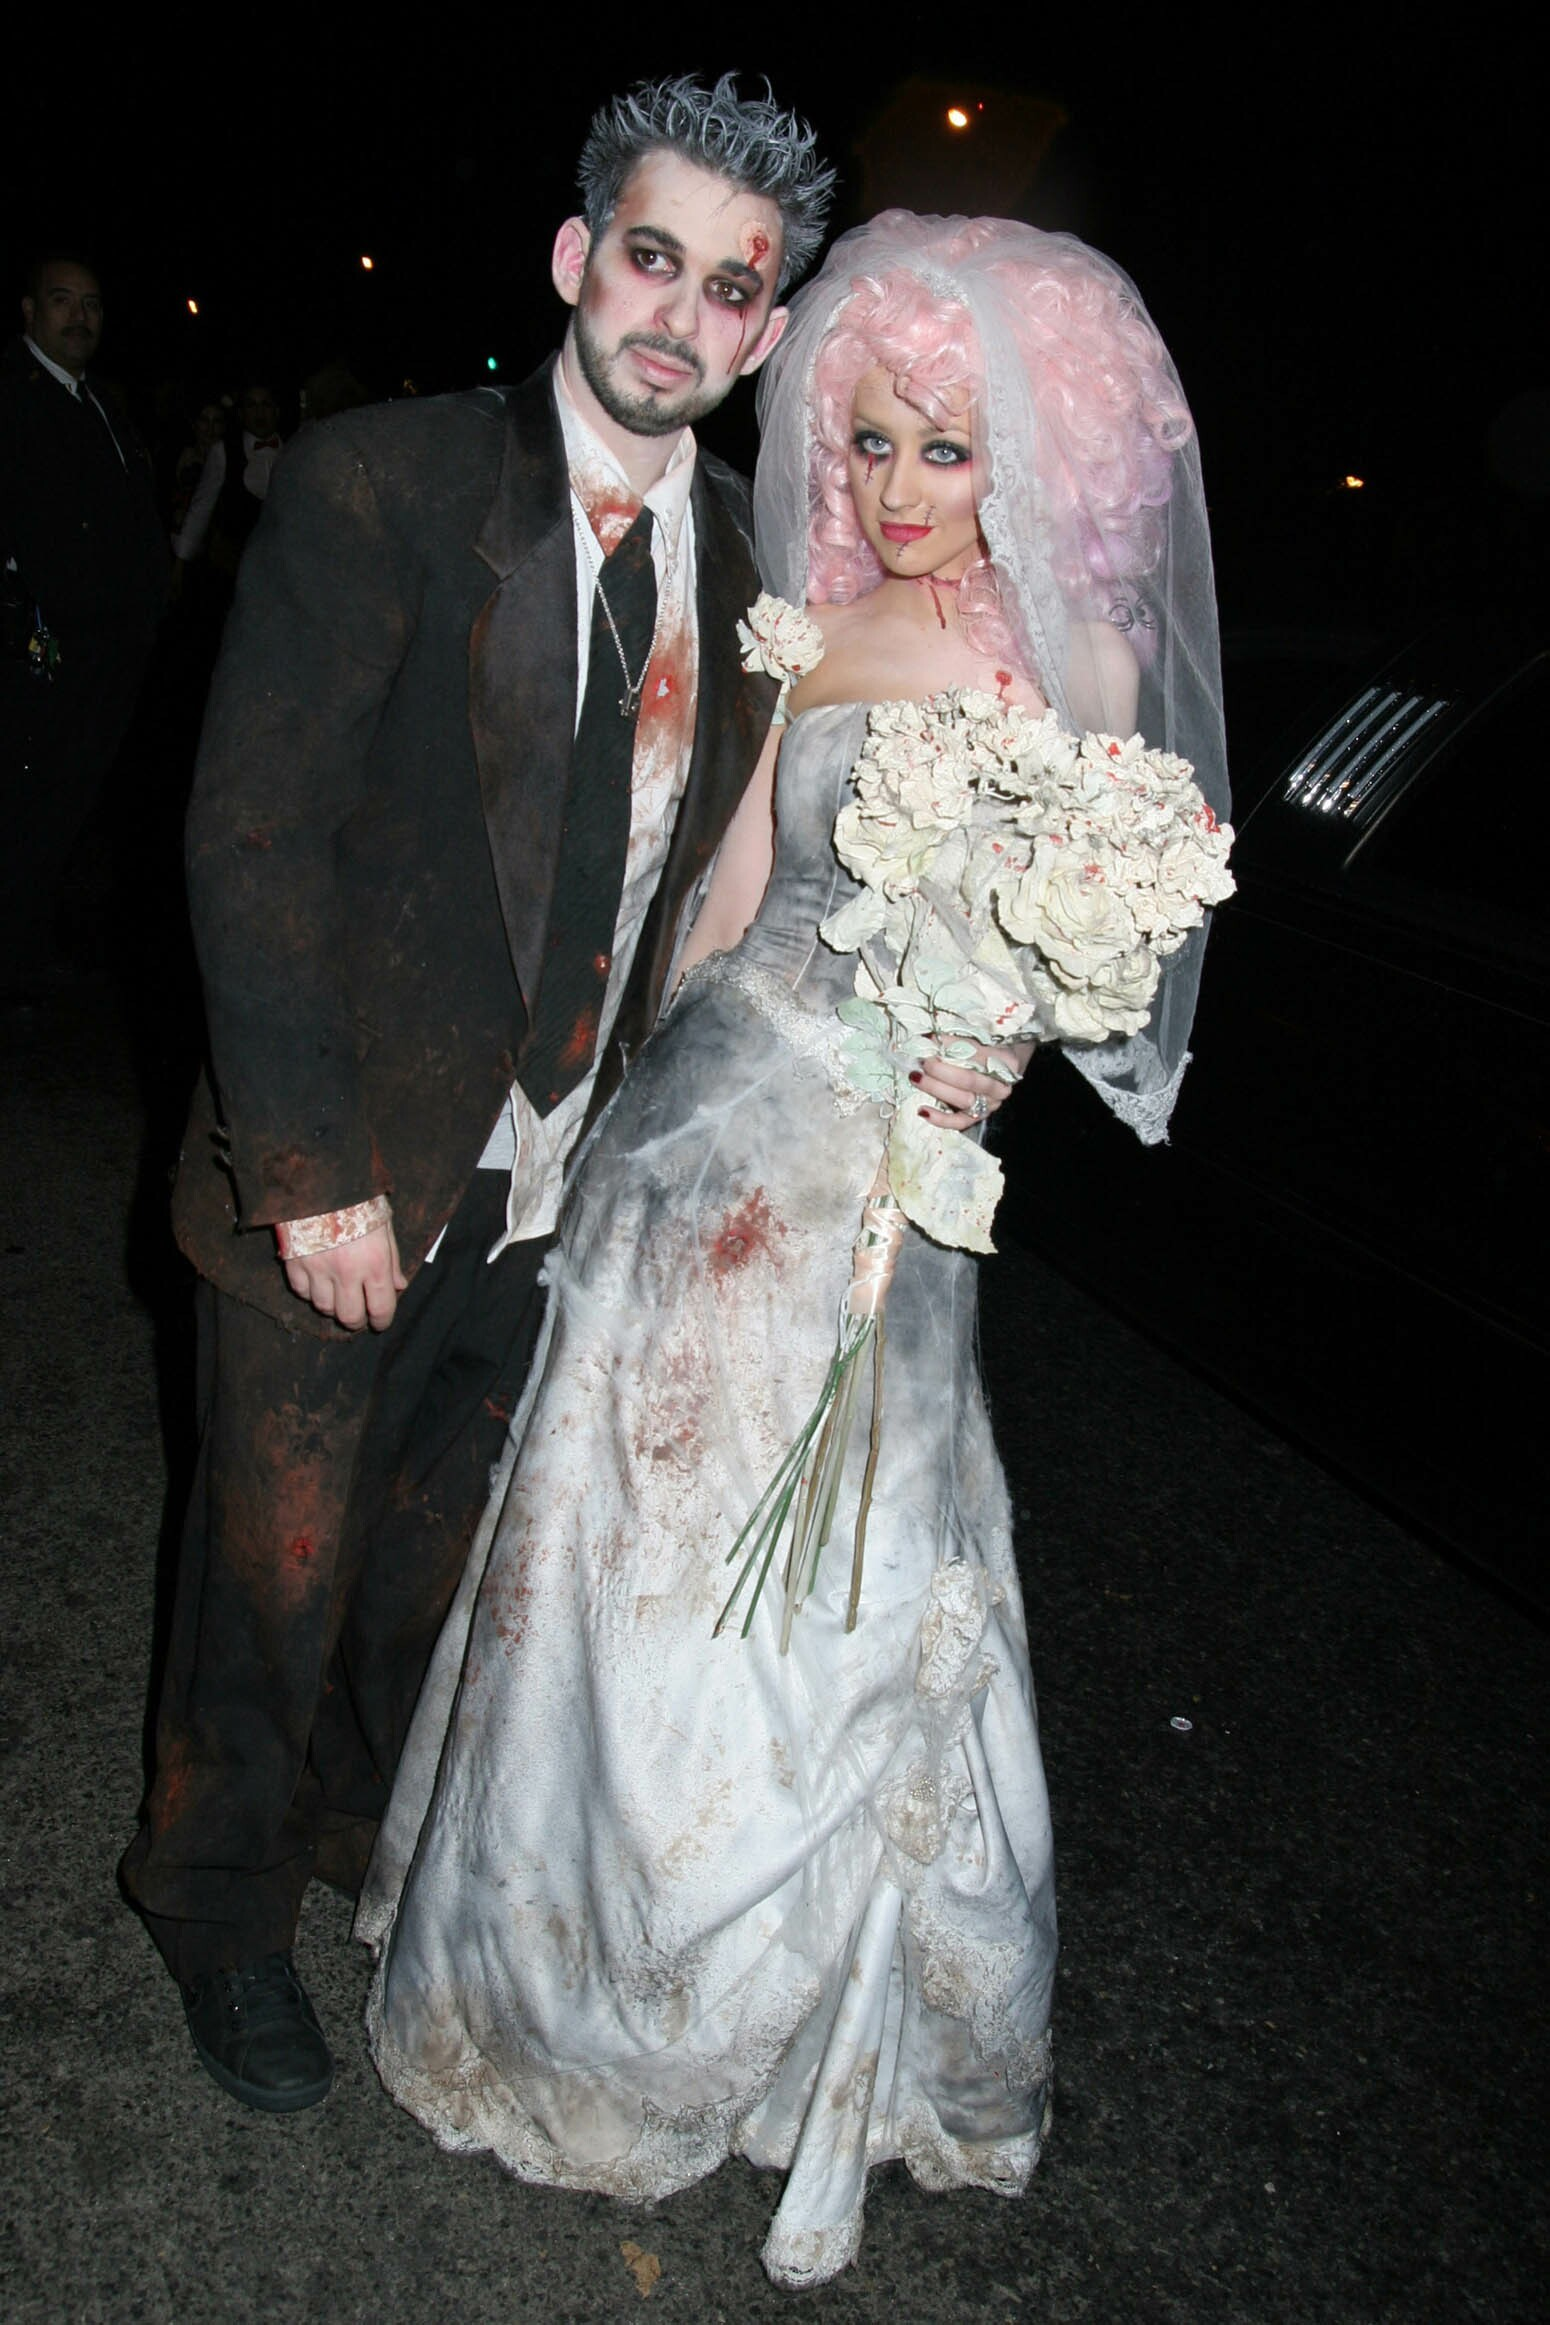 Christina Aguilera and ex  husband, Jordan Bratman, dressed as undead newlyweds in bloodied and soiled wedding attire in New York City on Oct. 30, 2006.